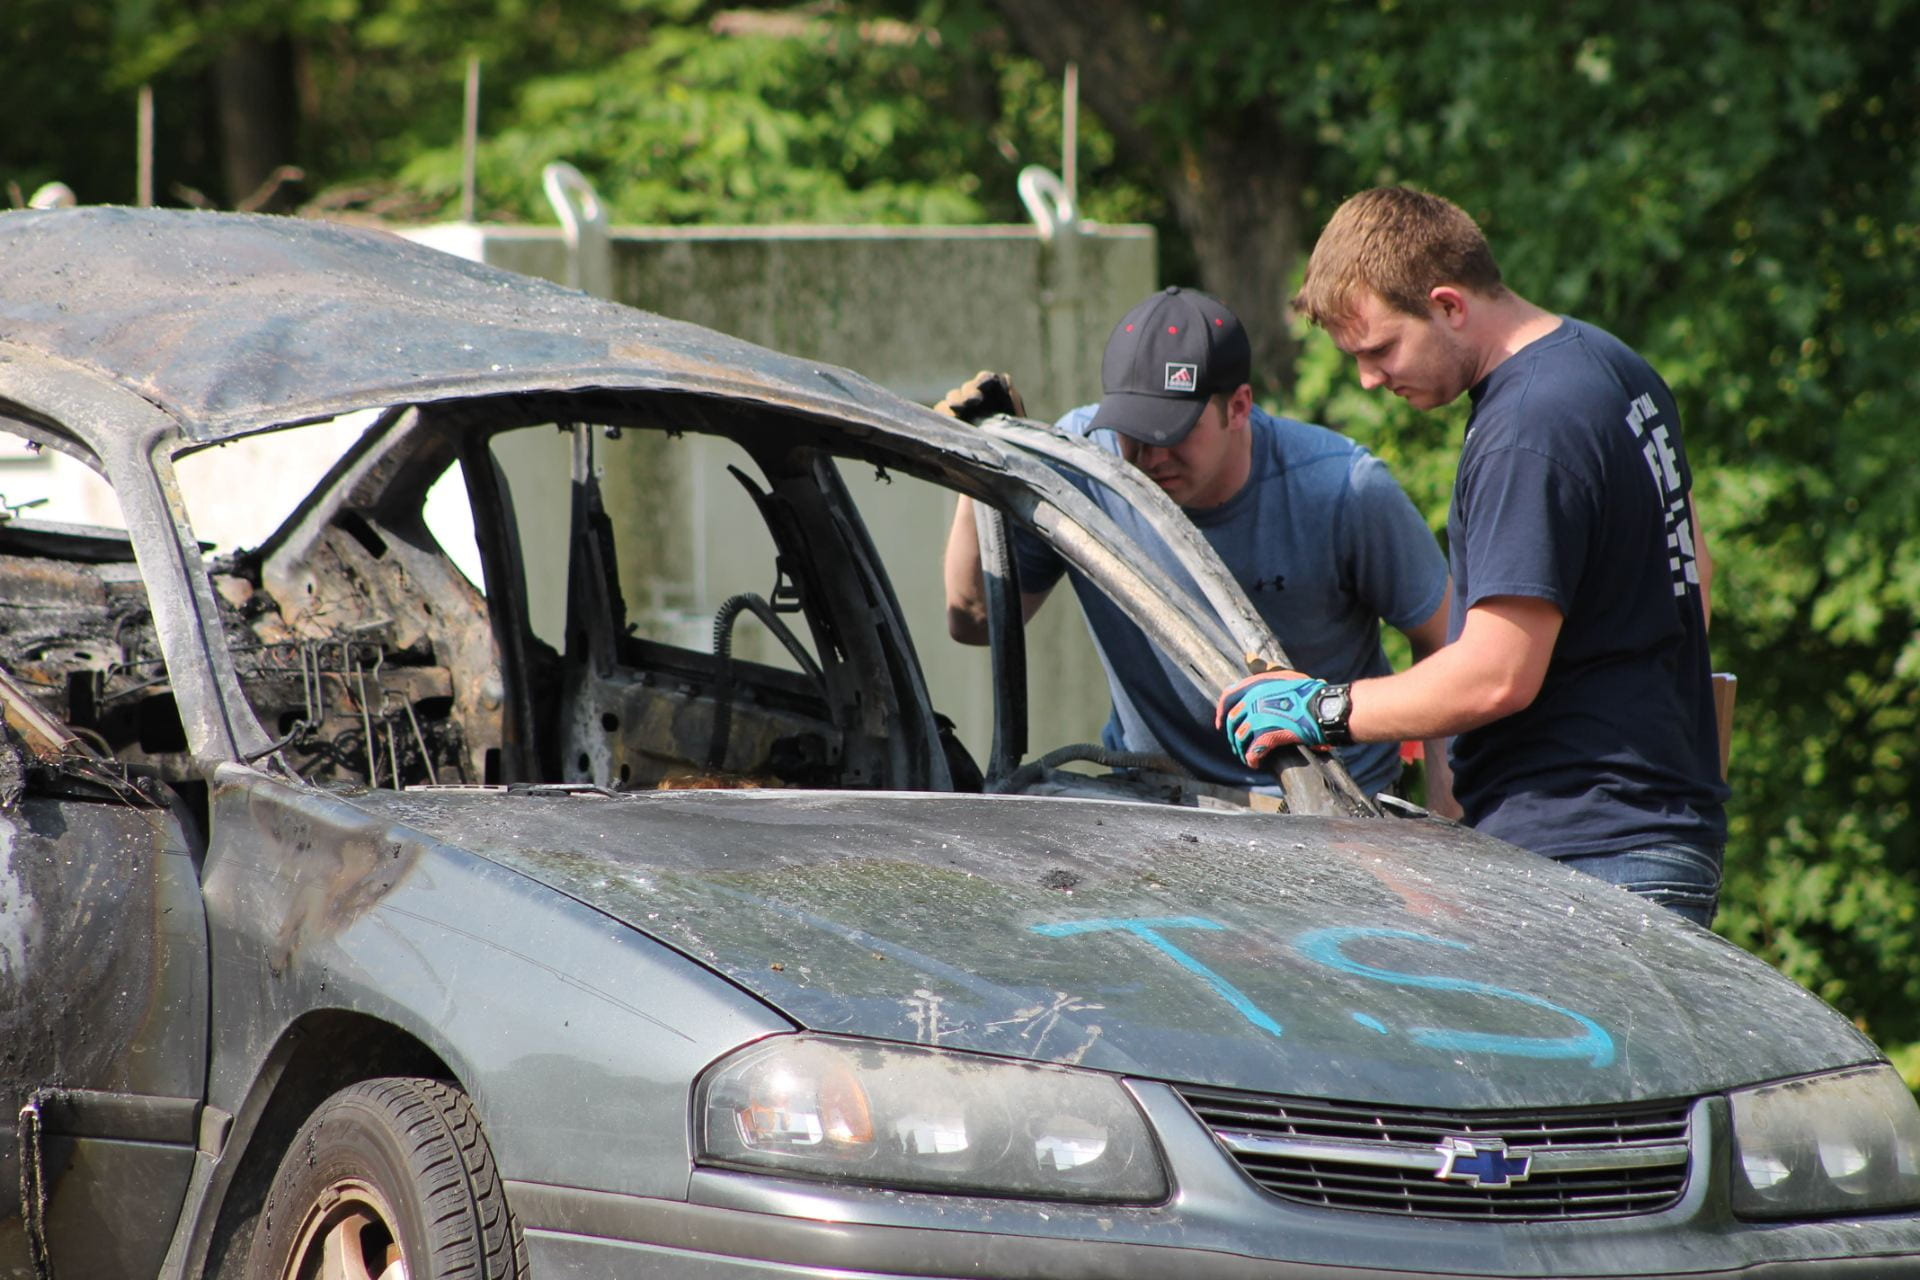 Two students stand beside the burned out remains of a car that had a bomb explode inside of it.